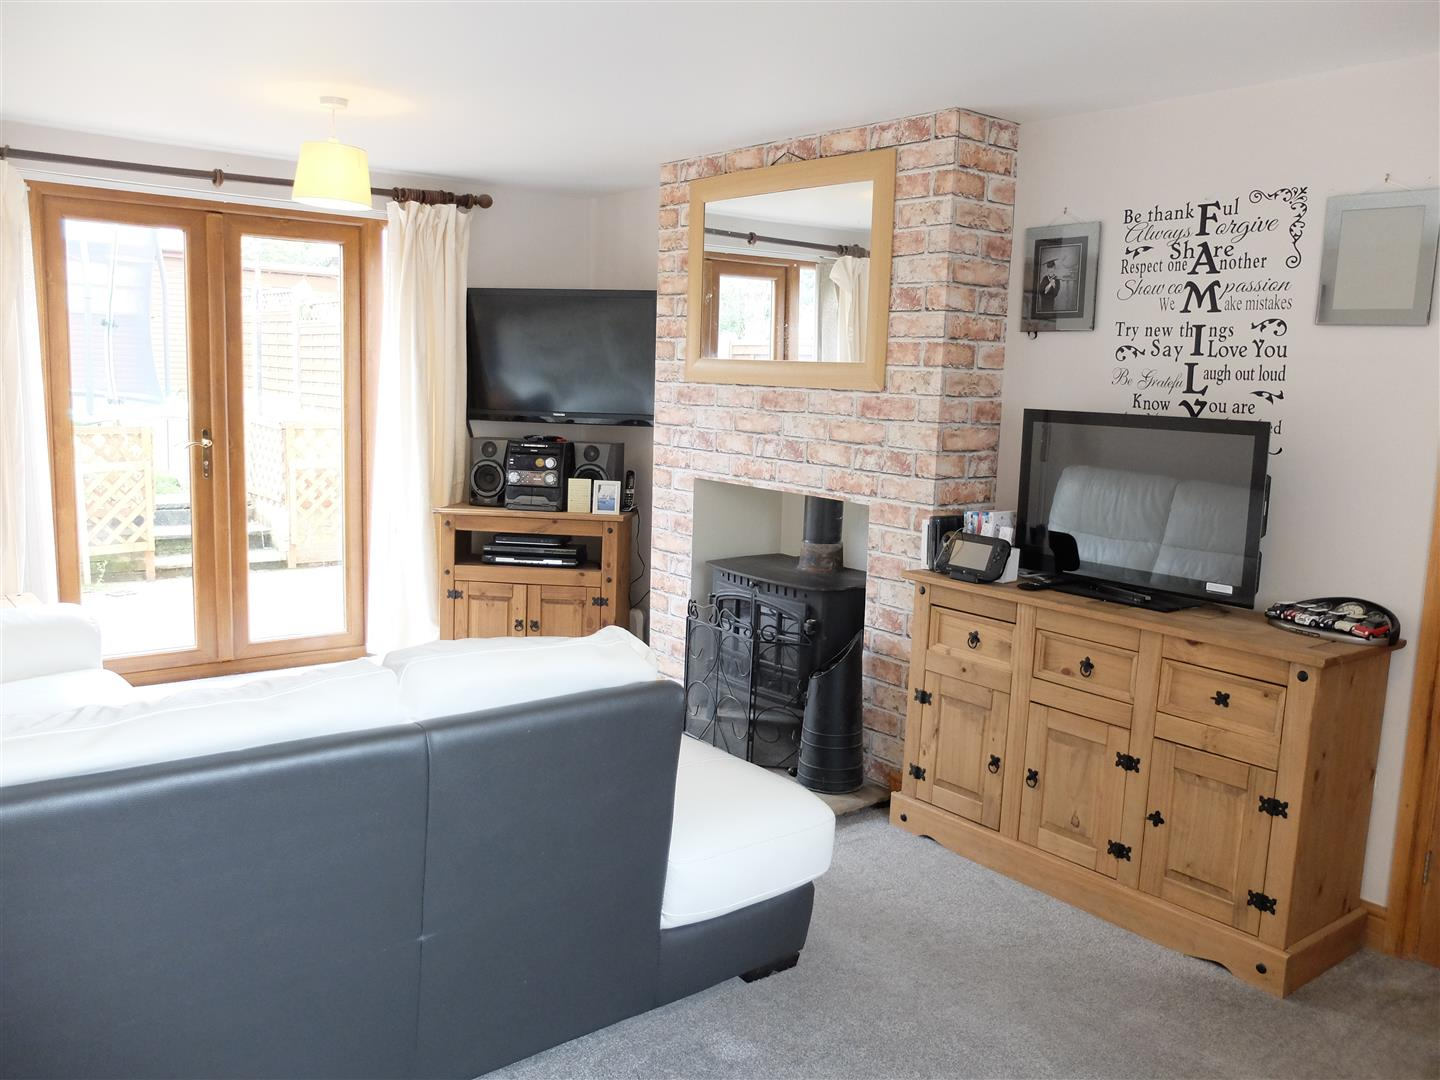 3 Bedrooms House - Semi-Detached For Sale 22 Rosehill Drive Carlisle